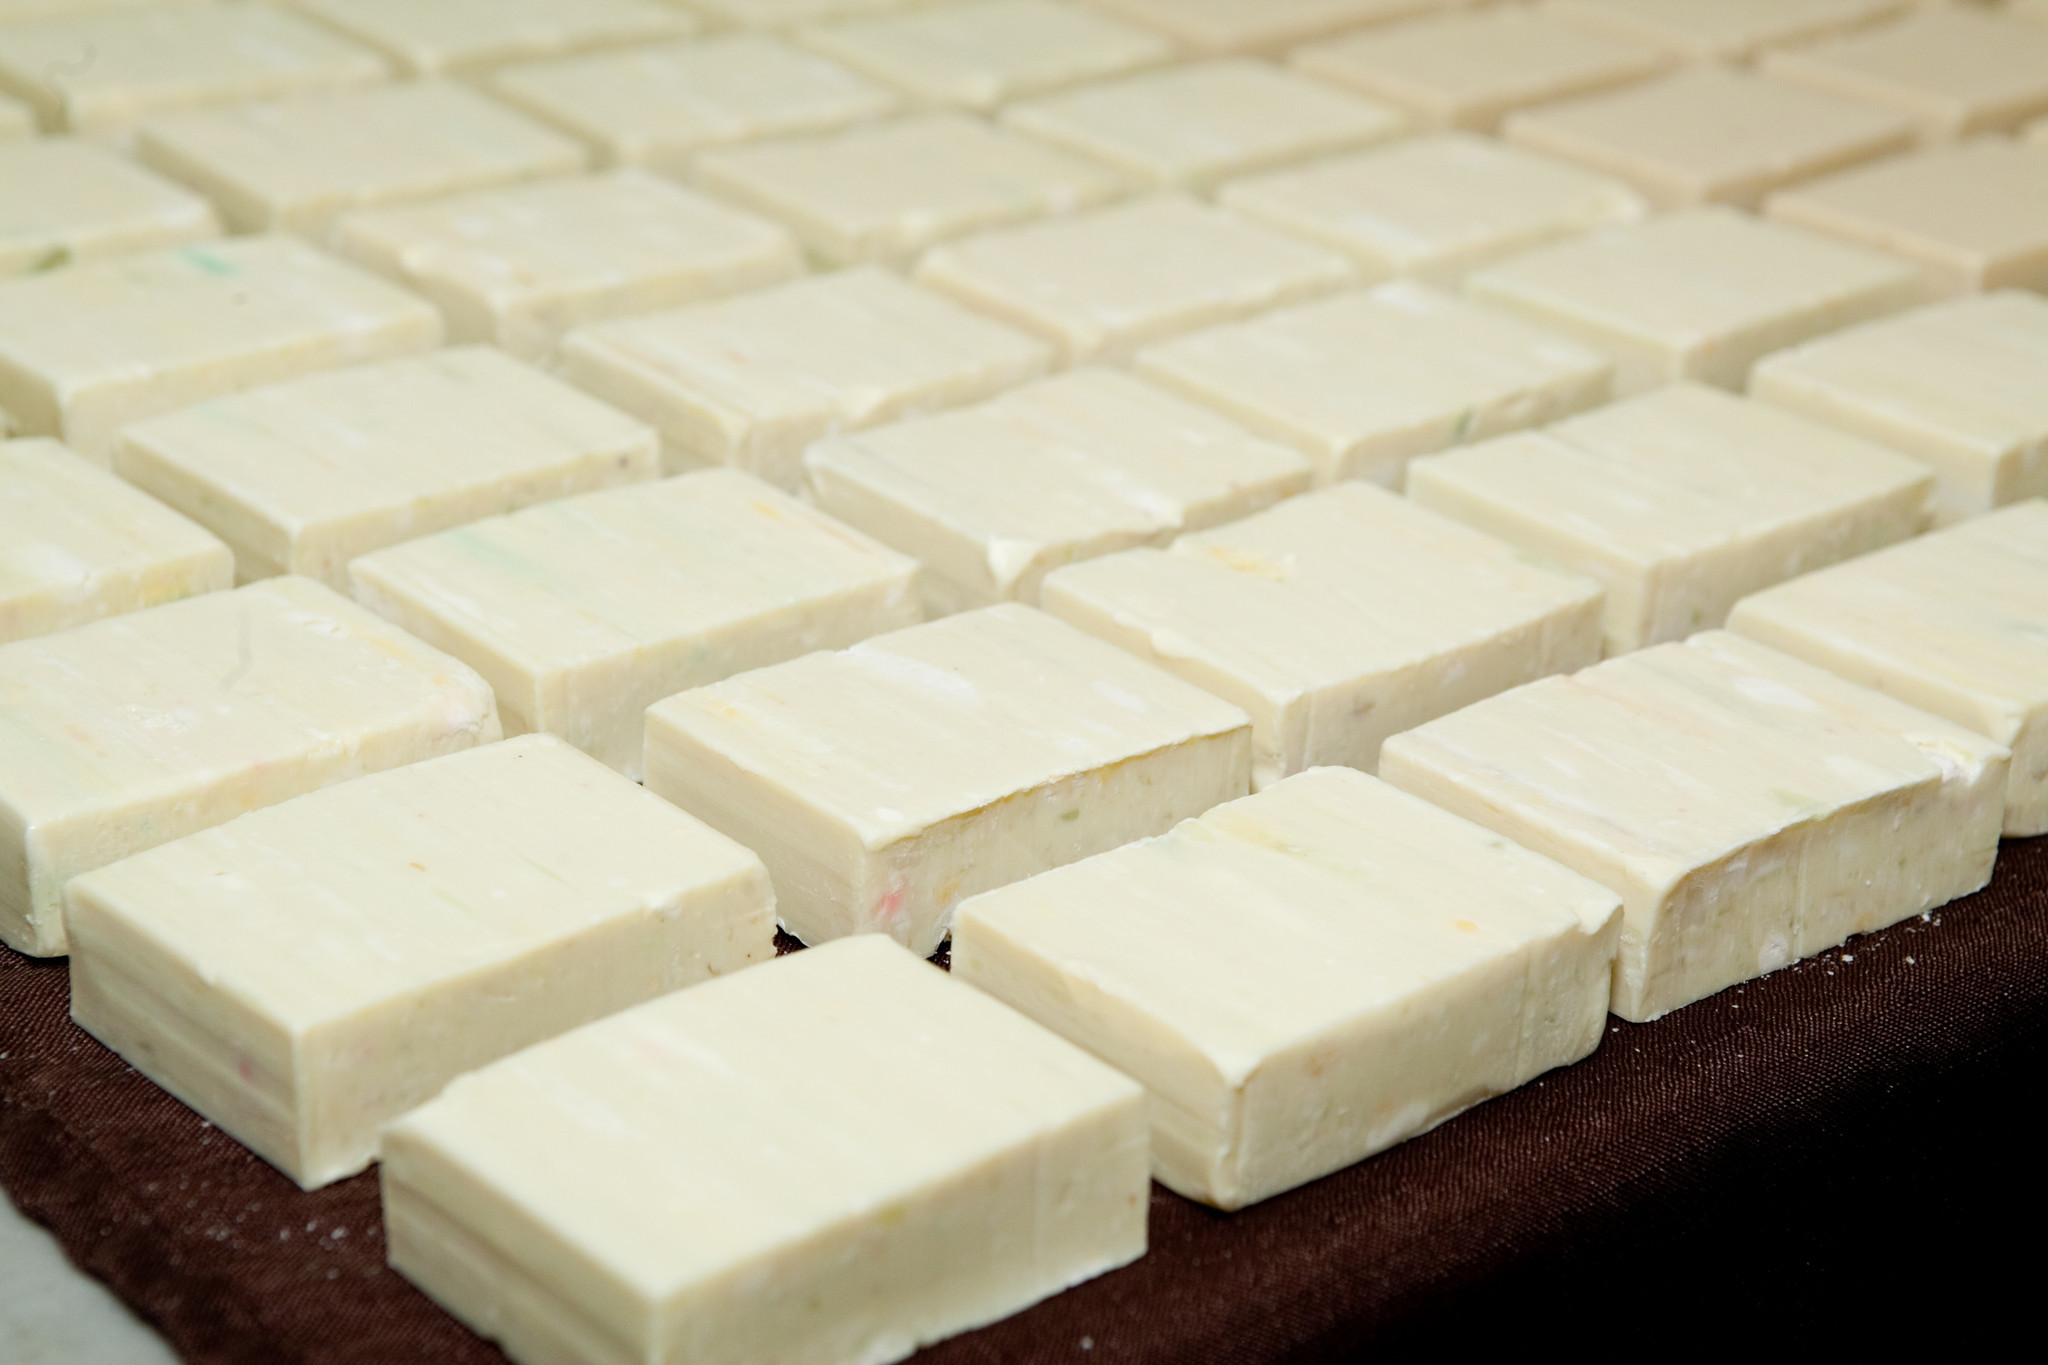 Recycled Hotel Soap Is Turned Into 20 Million Soap Bars